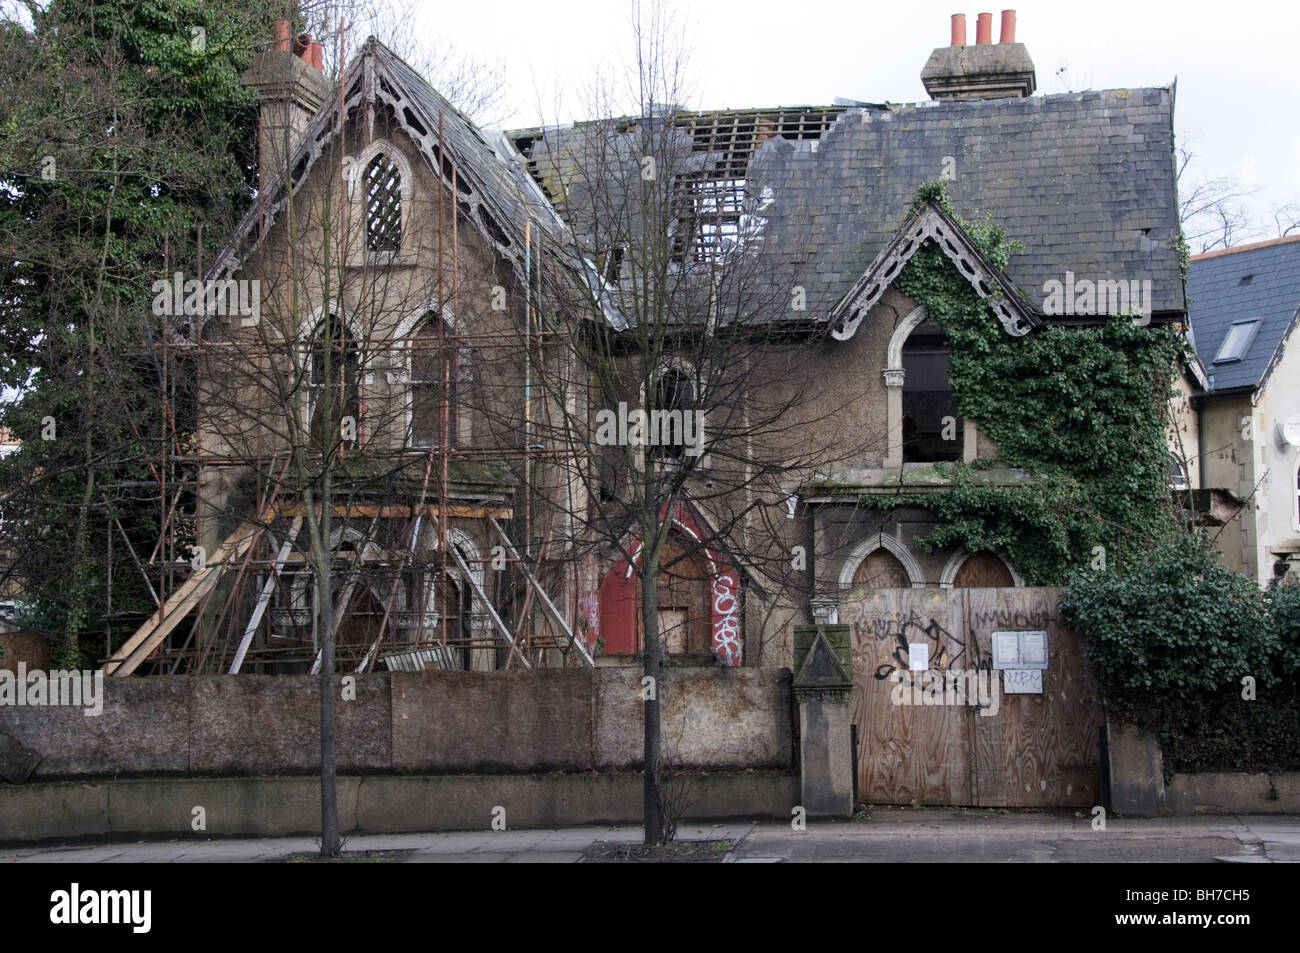 The Concrete House in Lordship Lane, East Dulwich, London.   FURTHER DETAILS IN DESCRIPTION. - Stock Image